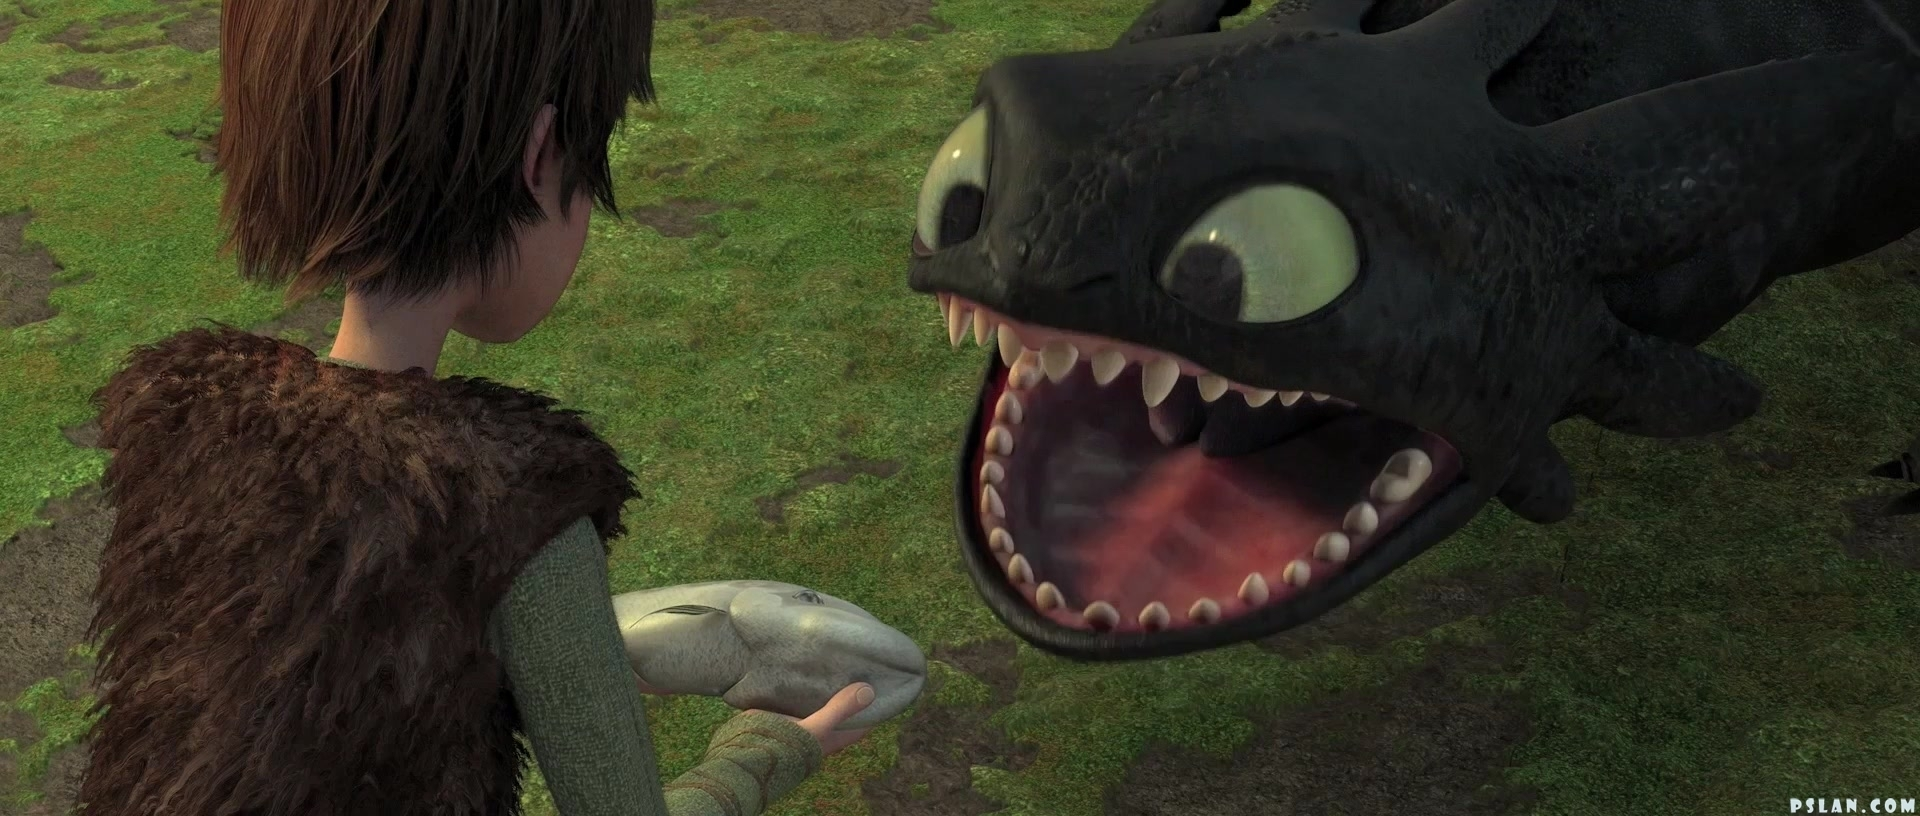 Image hiccup toothless how to train your dragon 9626254 1920 816 hiccup toothless how to train your dragon 9626254 1920 816g ccuart Images